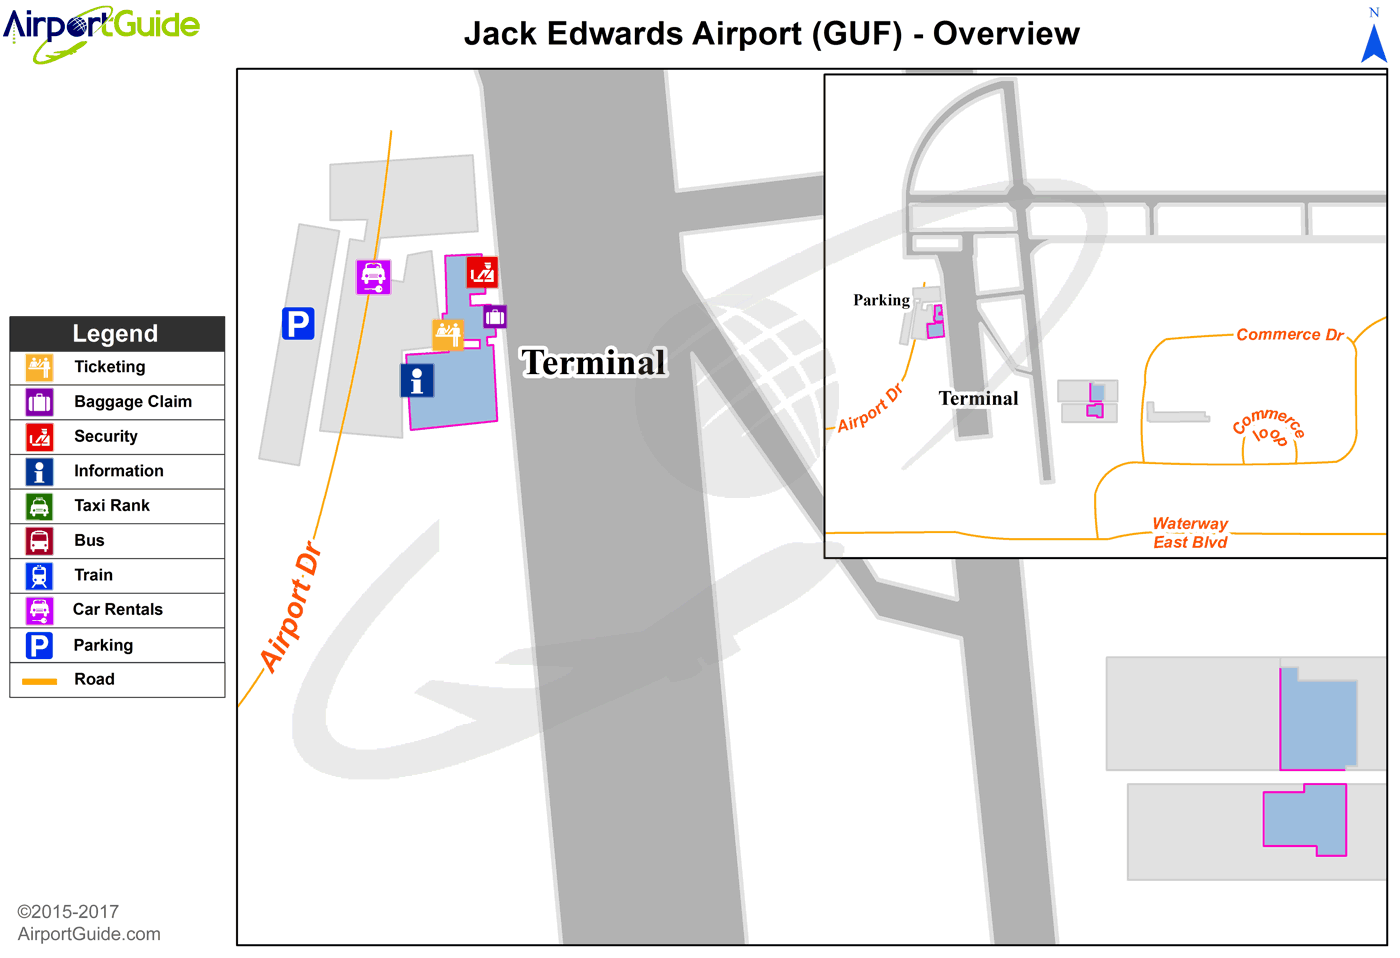 Gulf Shores - Jack Edwards National (GUF) Airport Terminal Map - Overview